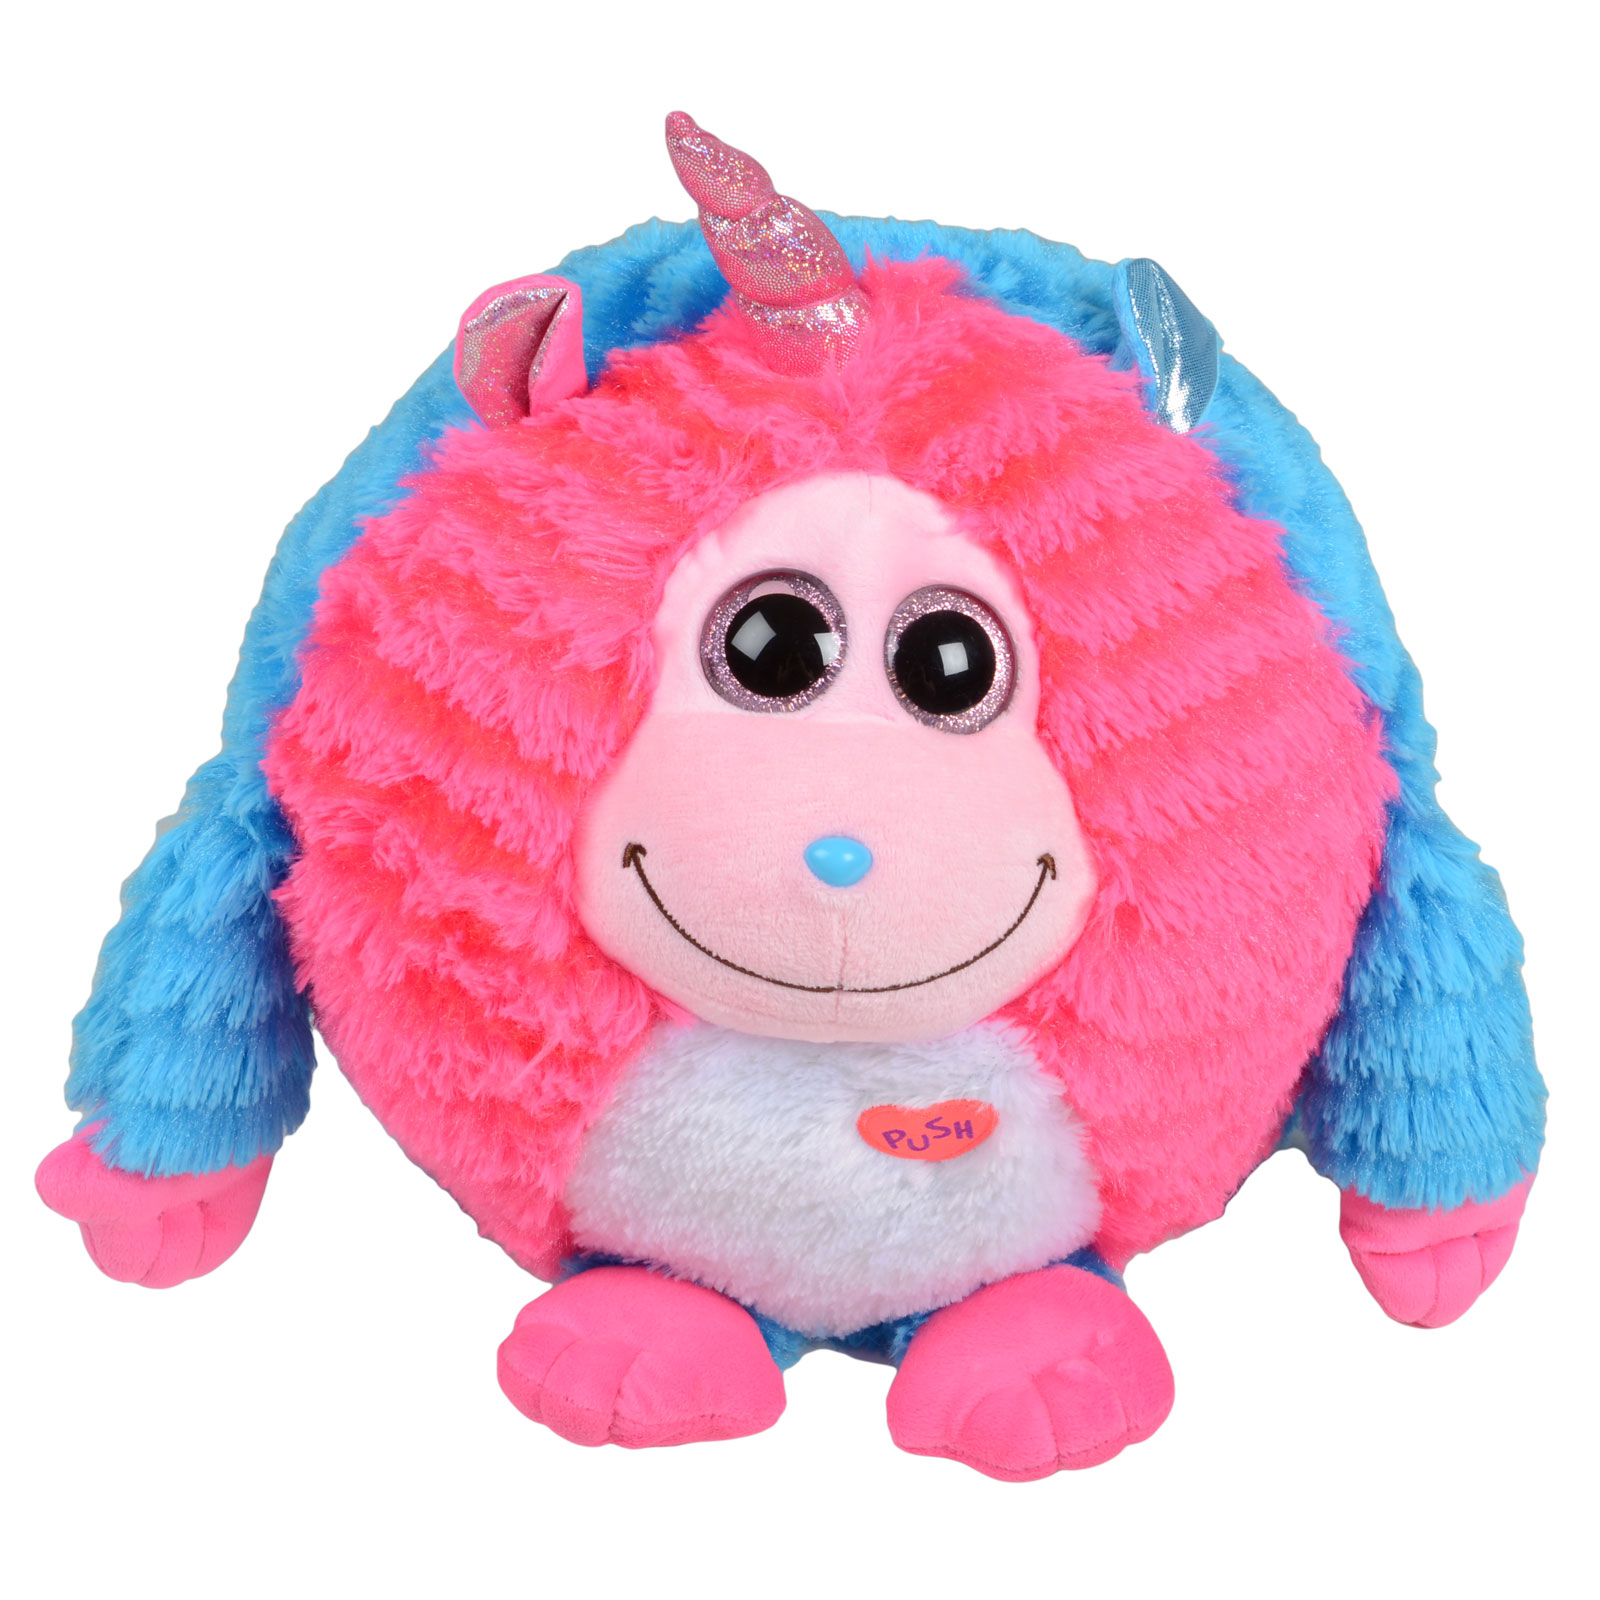 New Soft Toys : Childrens quot monstaz plush soft toy talking monsters